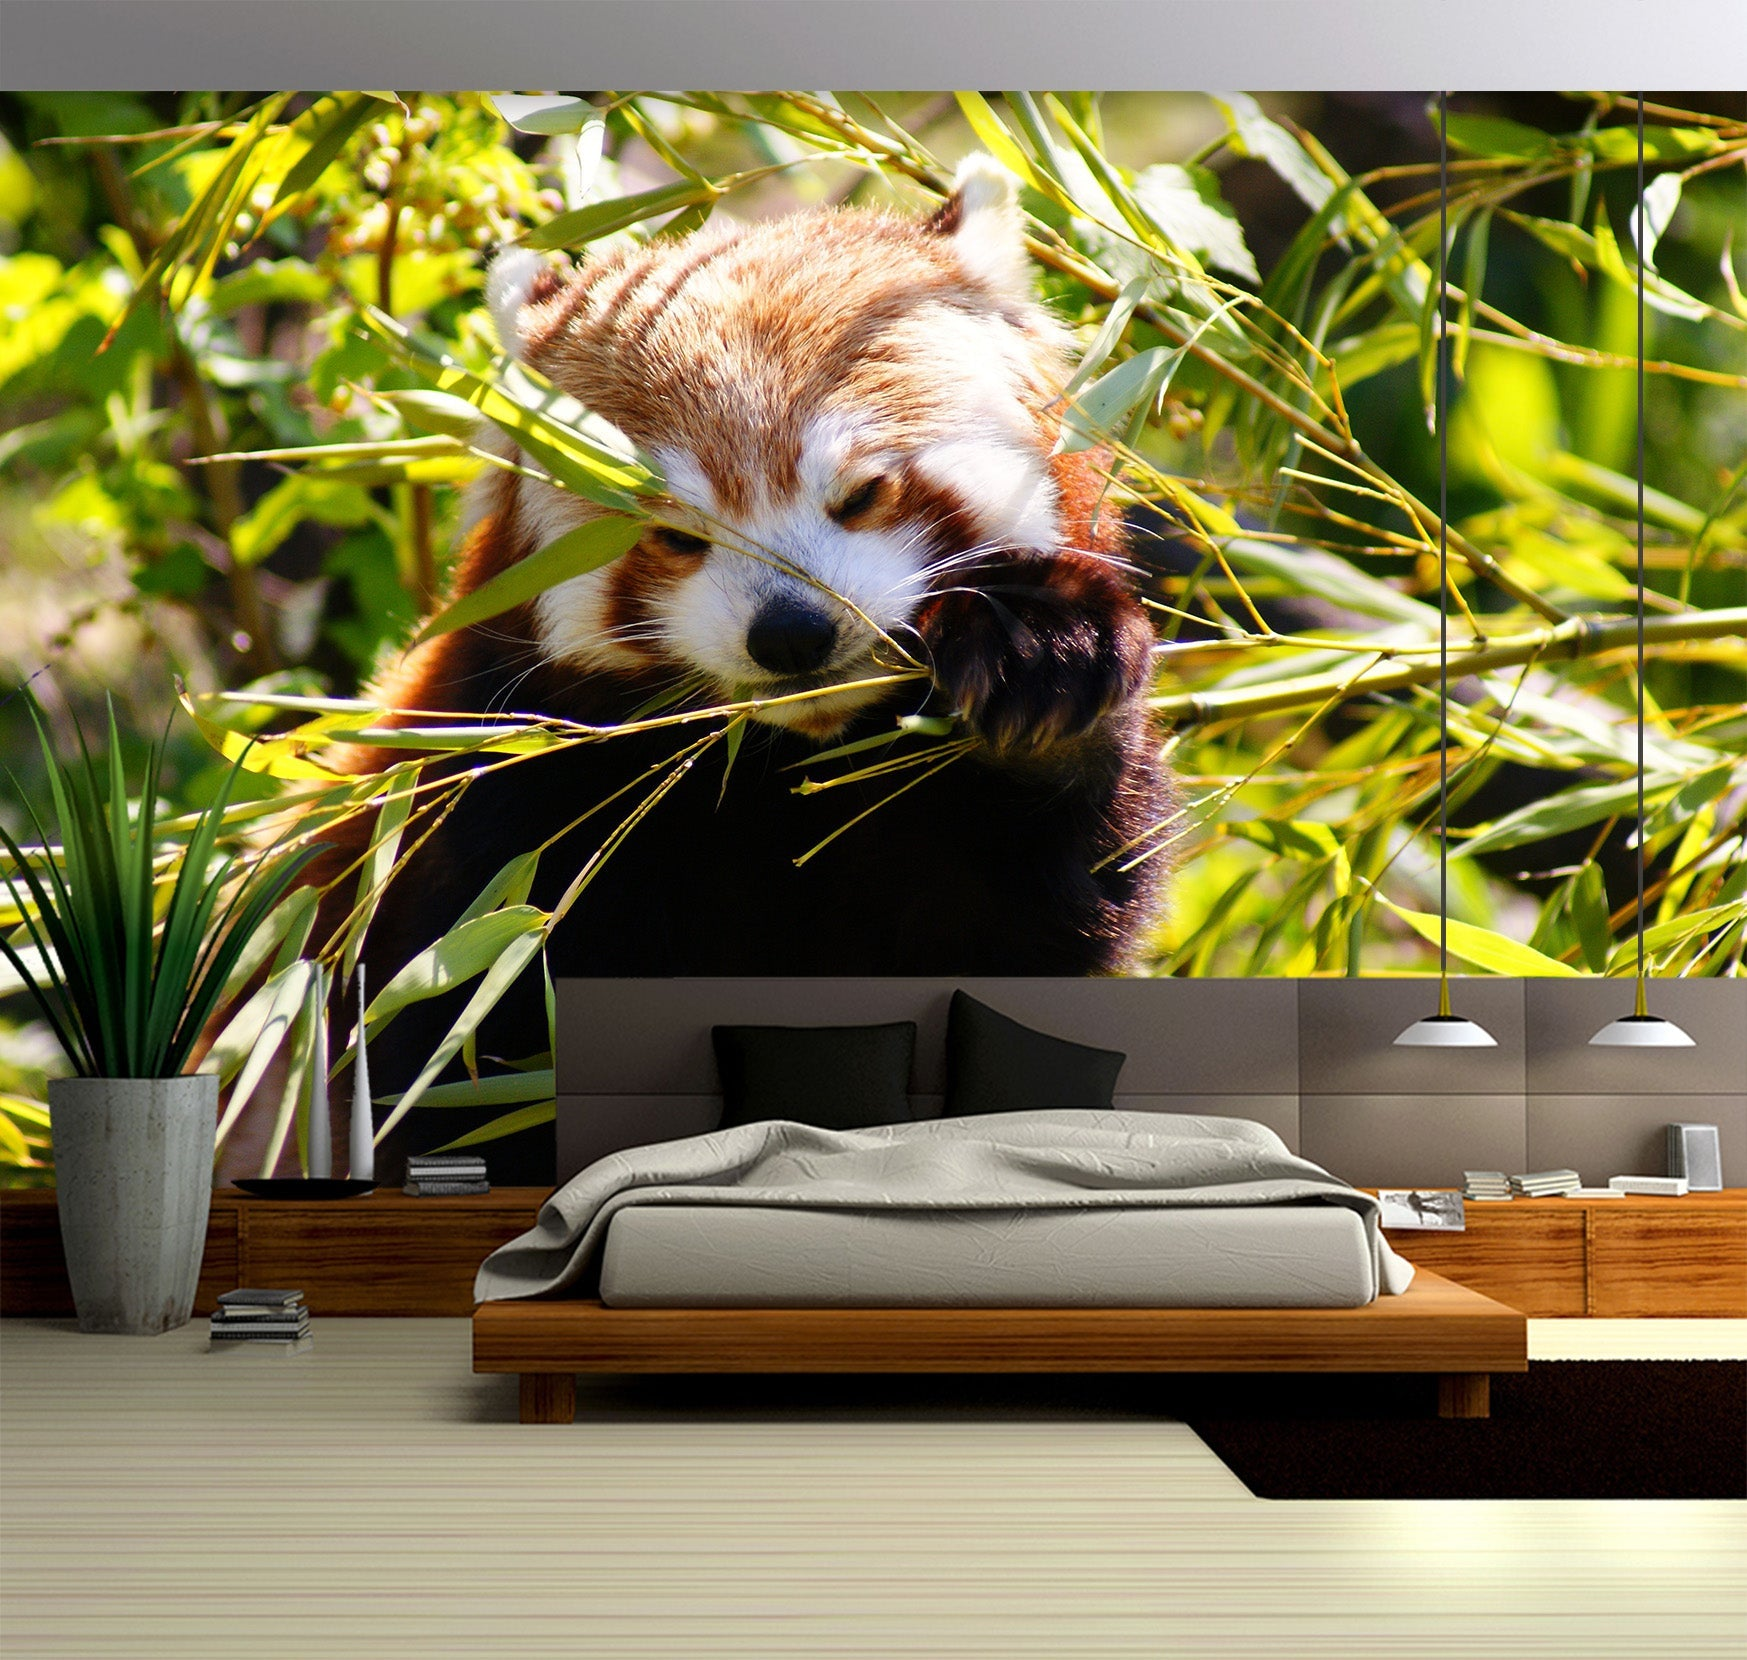 3D Little Panda 057 Wall Murals